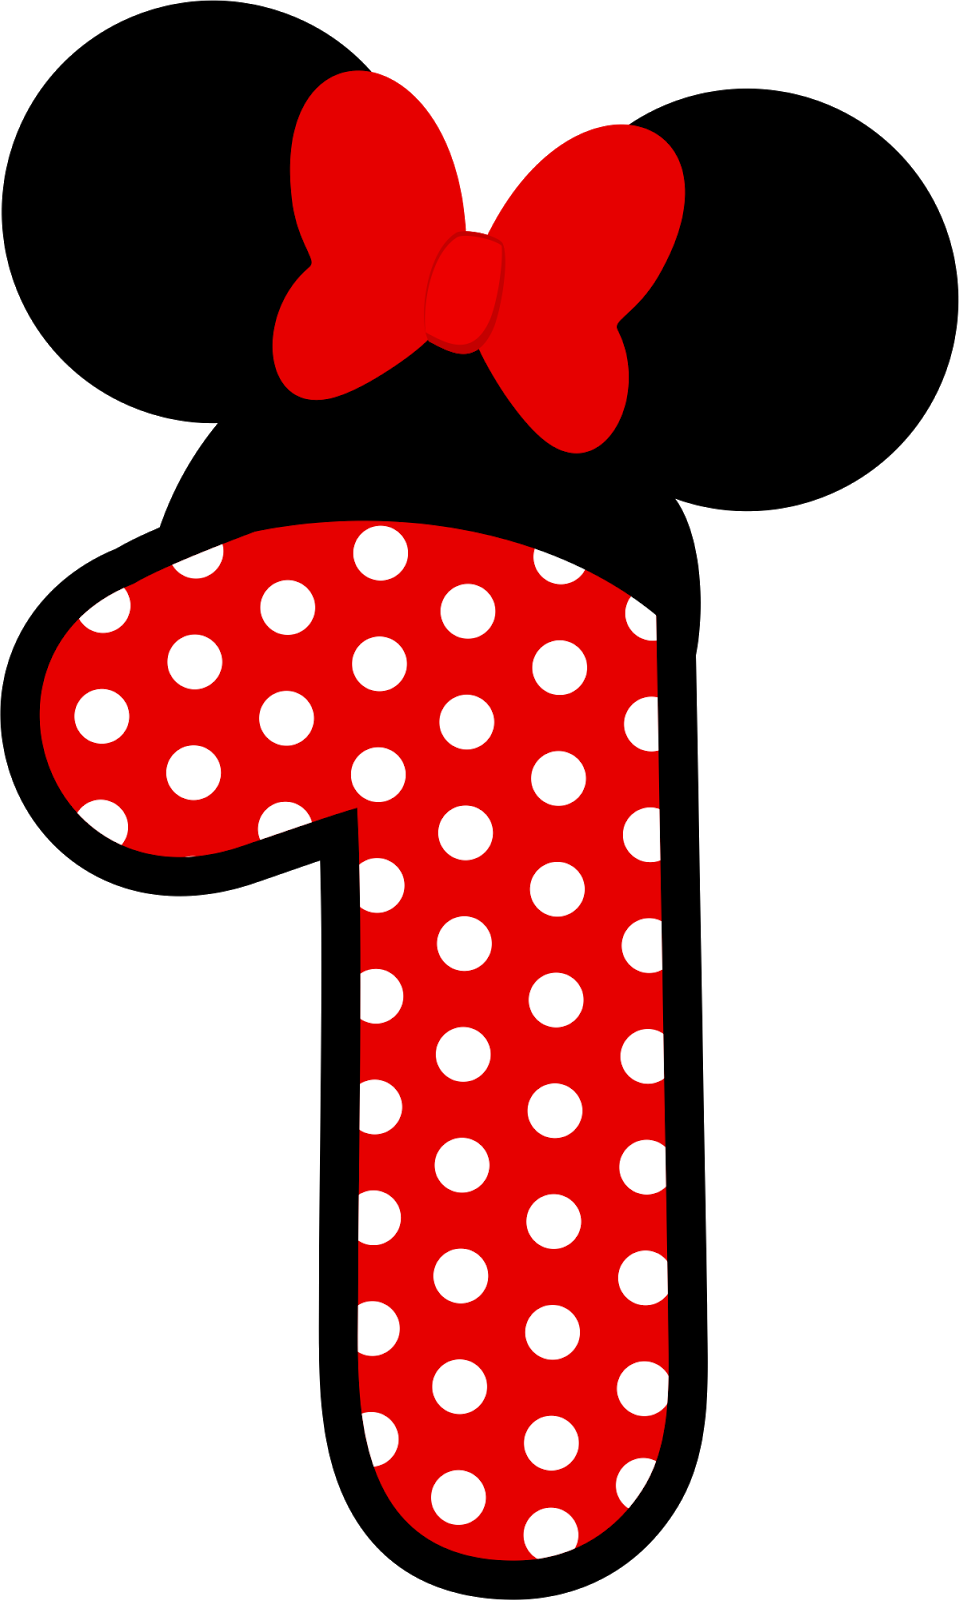 Mickey mouse banner png. Grafos red festa minnie